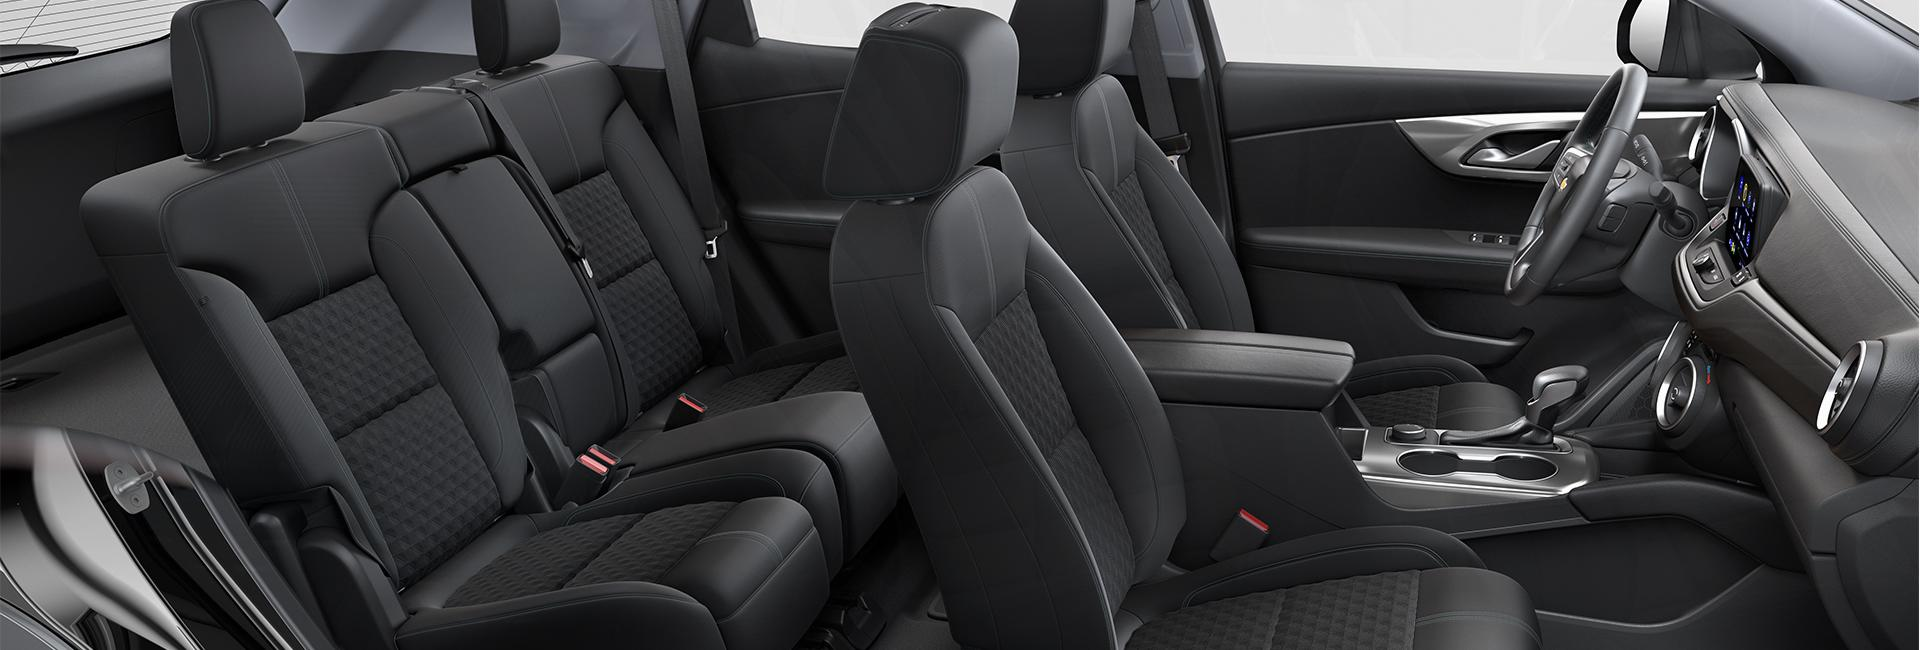 Picture of the interior of the 2020 Chevy Blazer for sale.